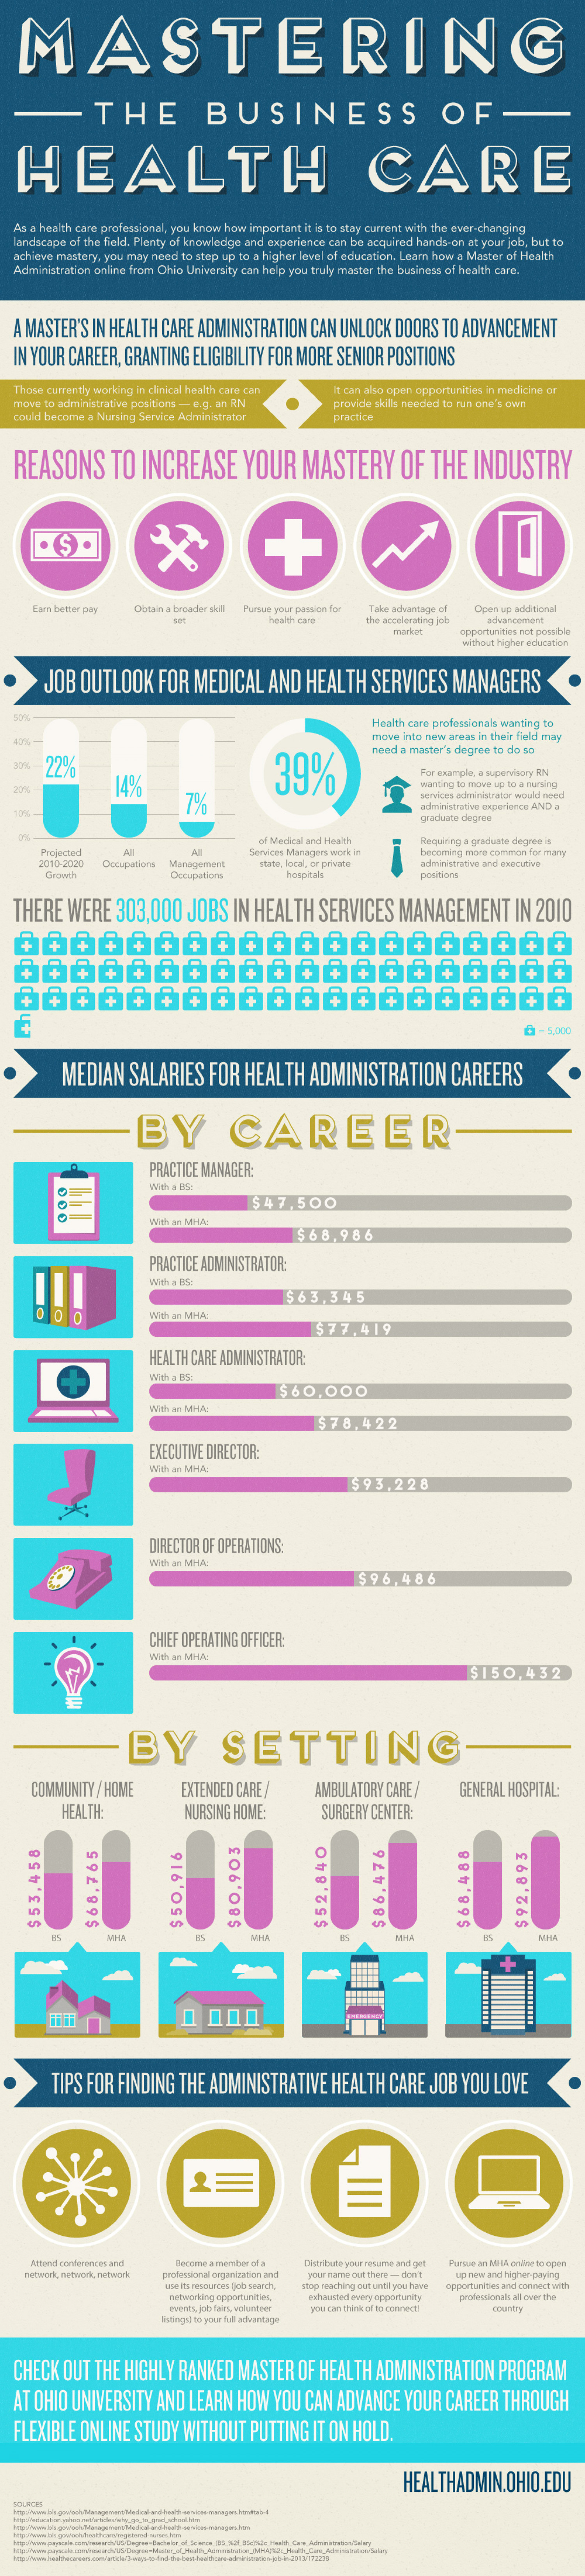 Mastering The Business of Health Care Infographic